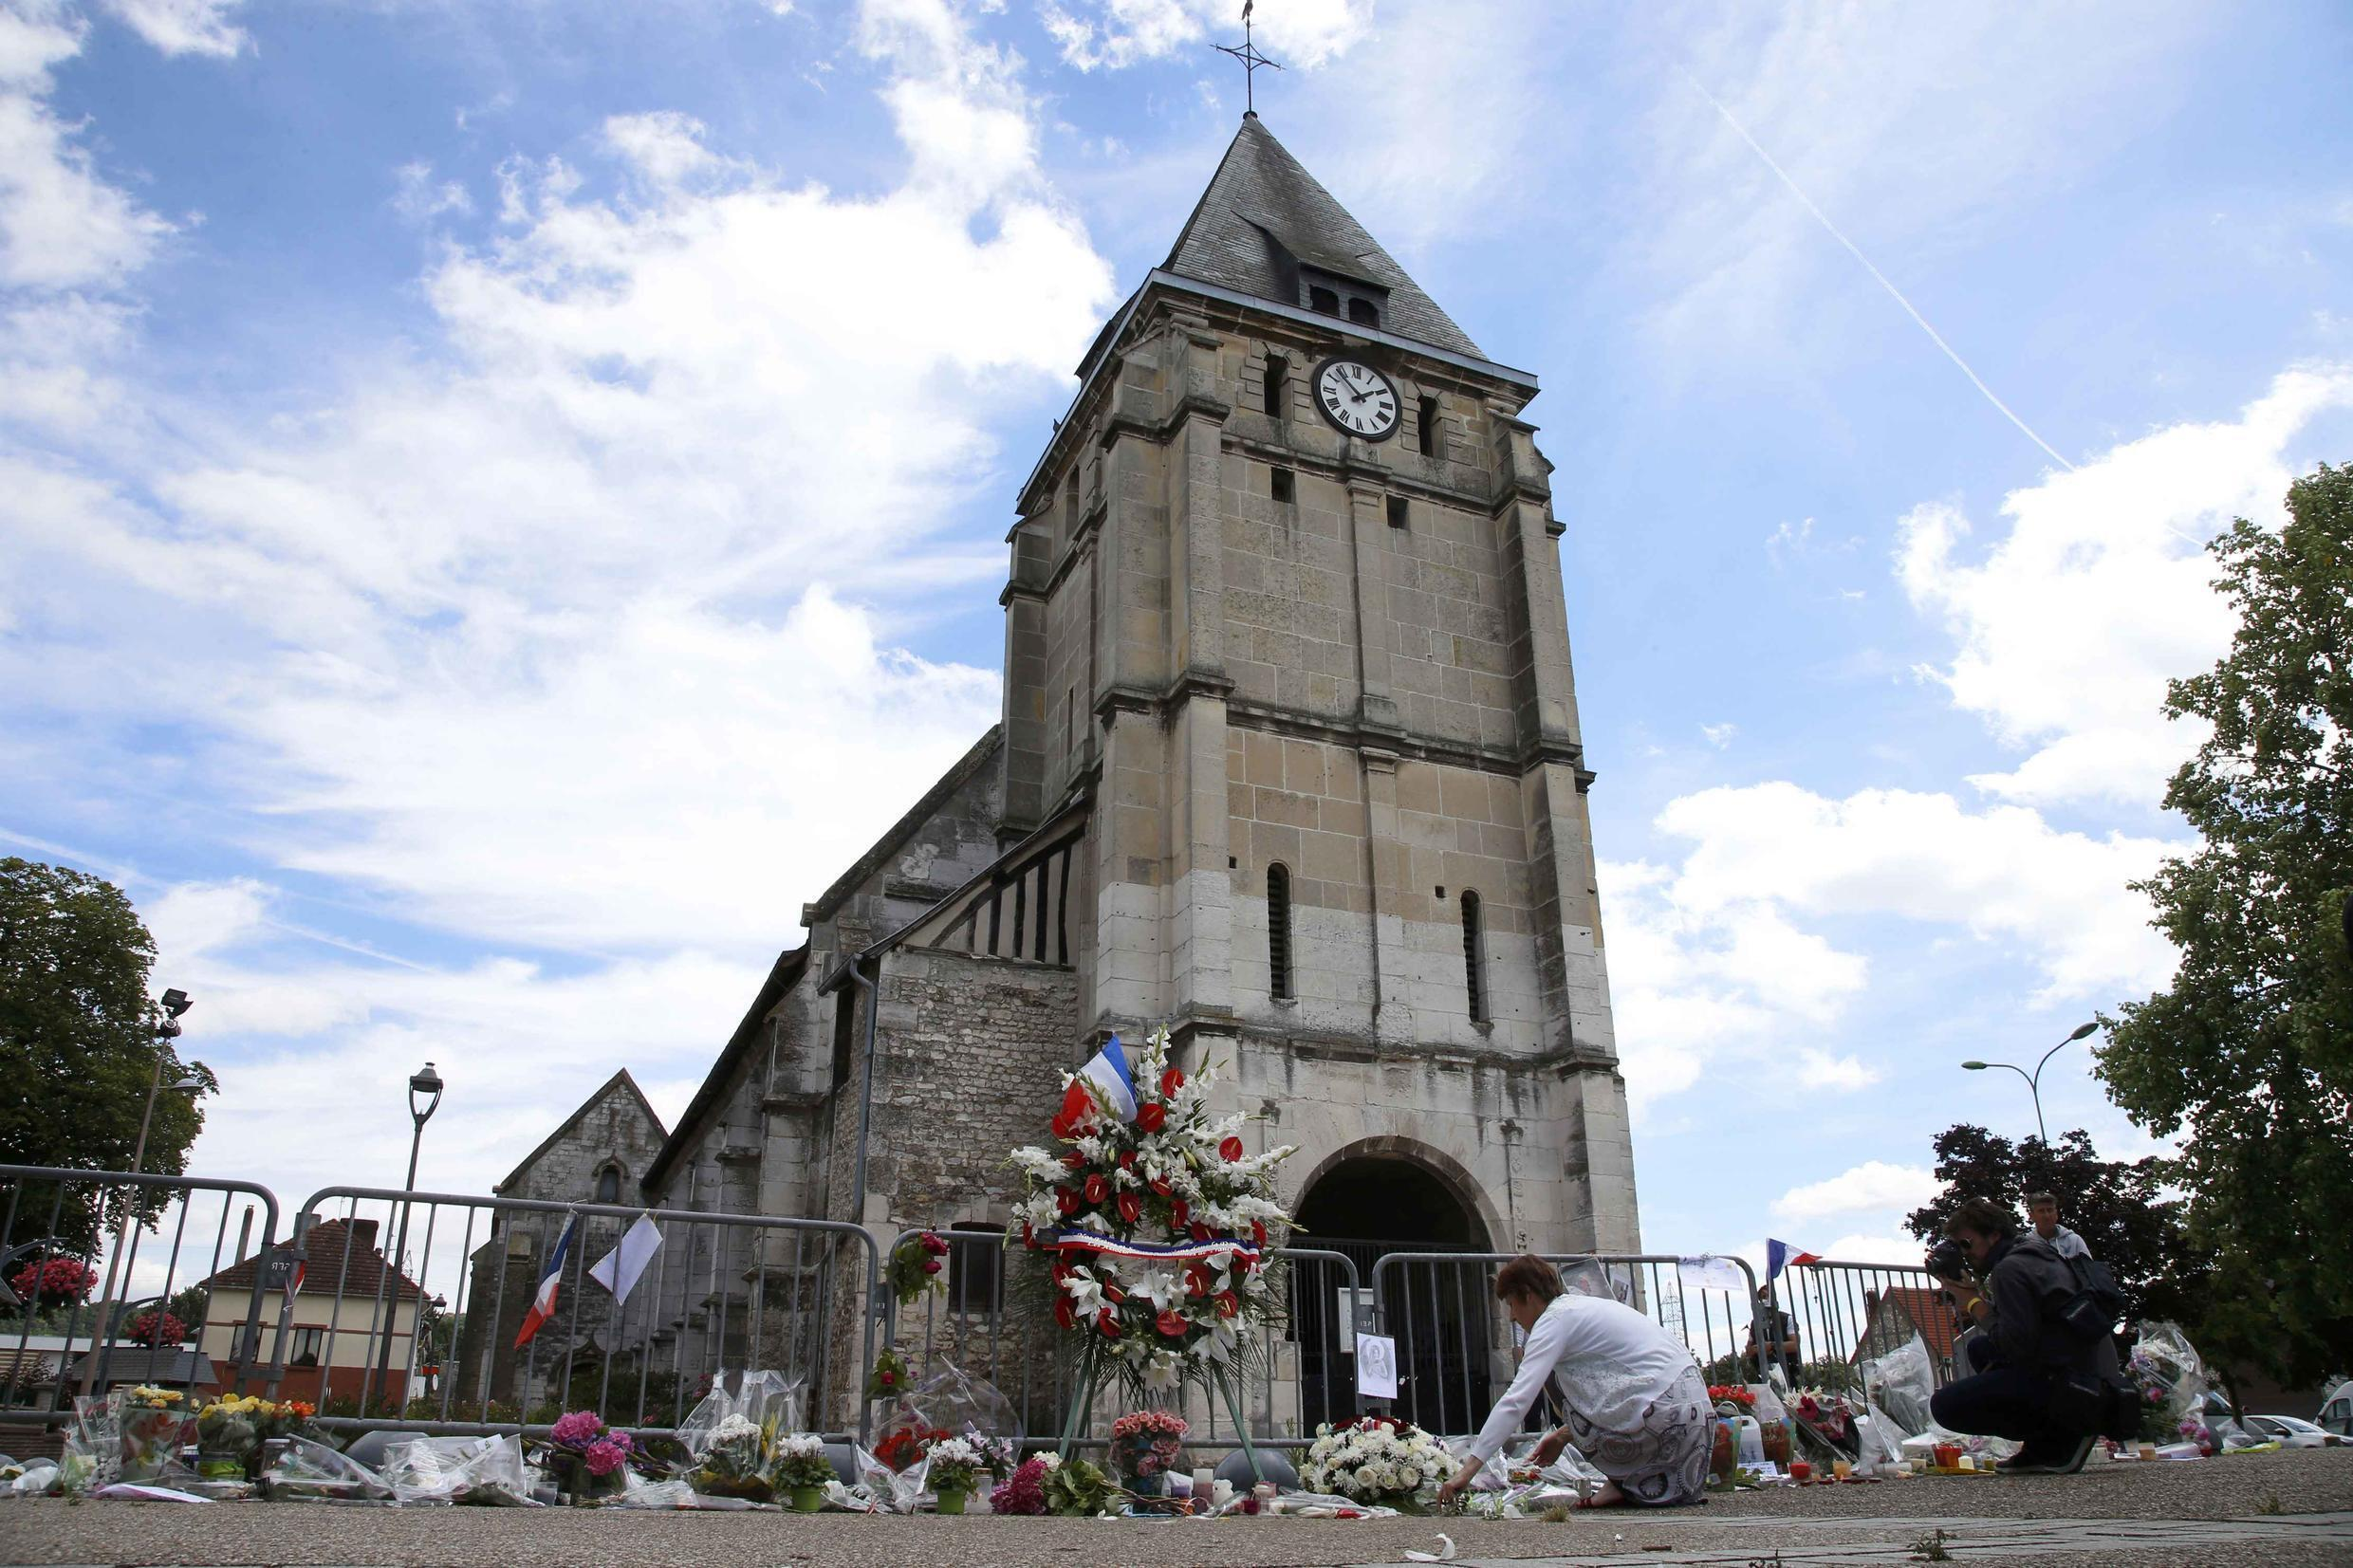 This file picture shows people paying tribute outside the church in Saint-Etienne-du-Rouvray.